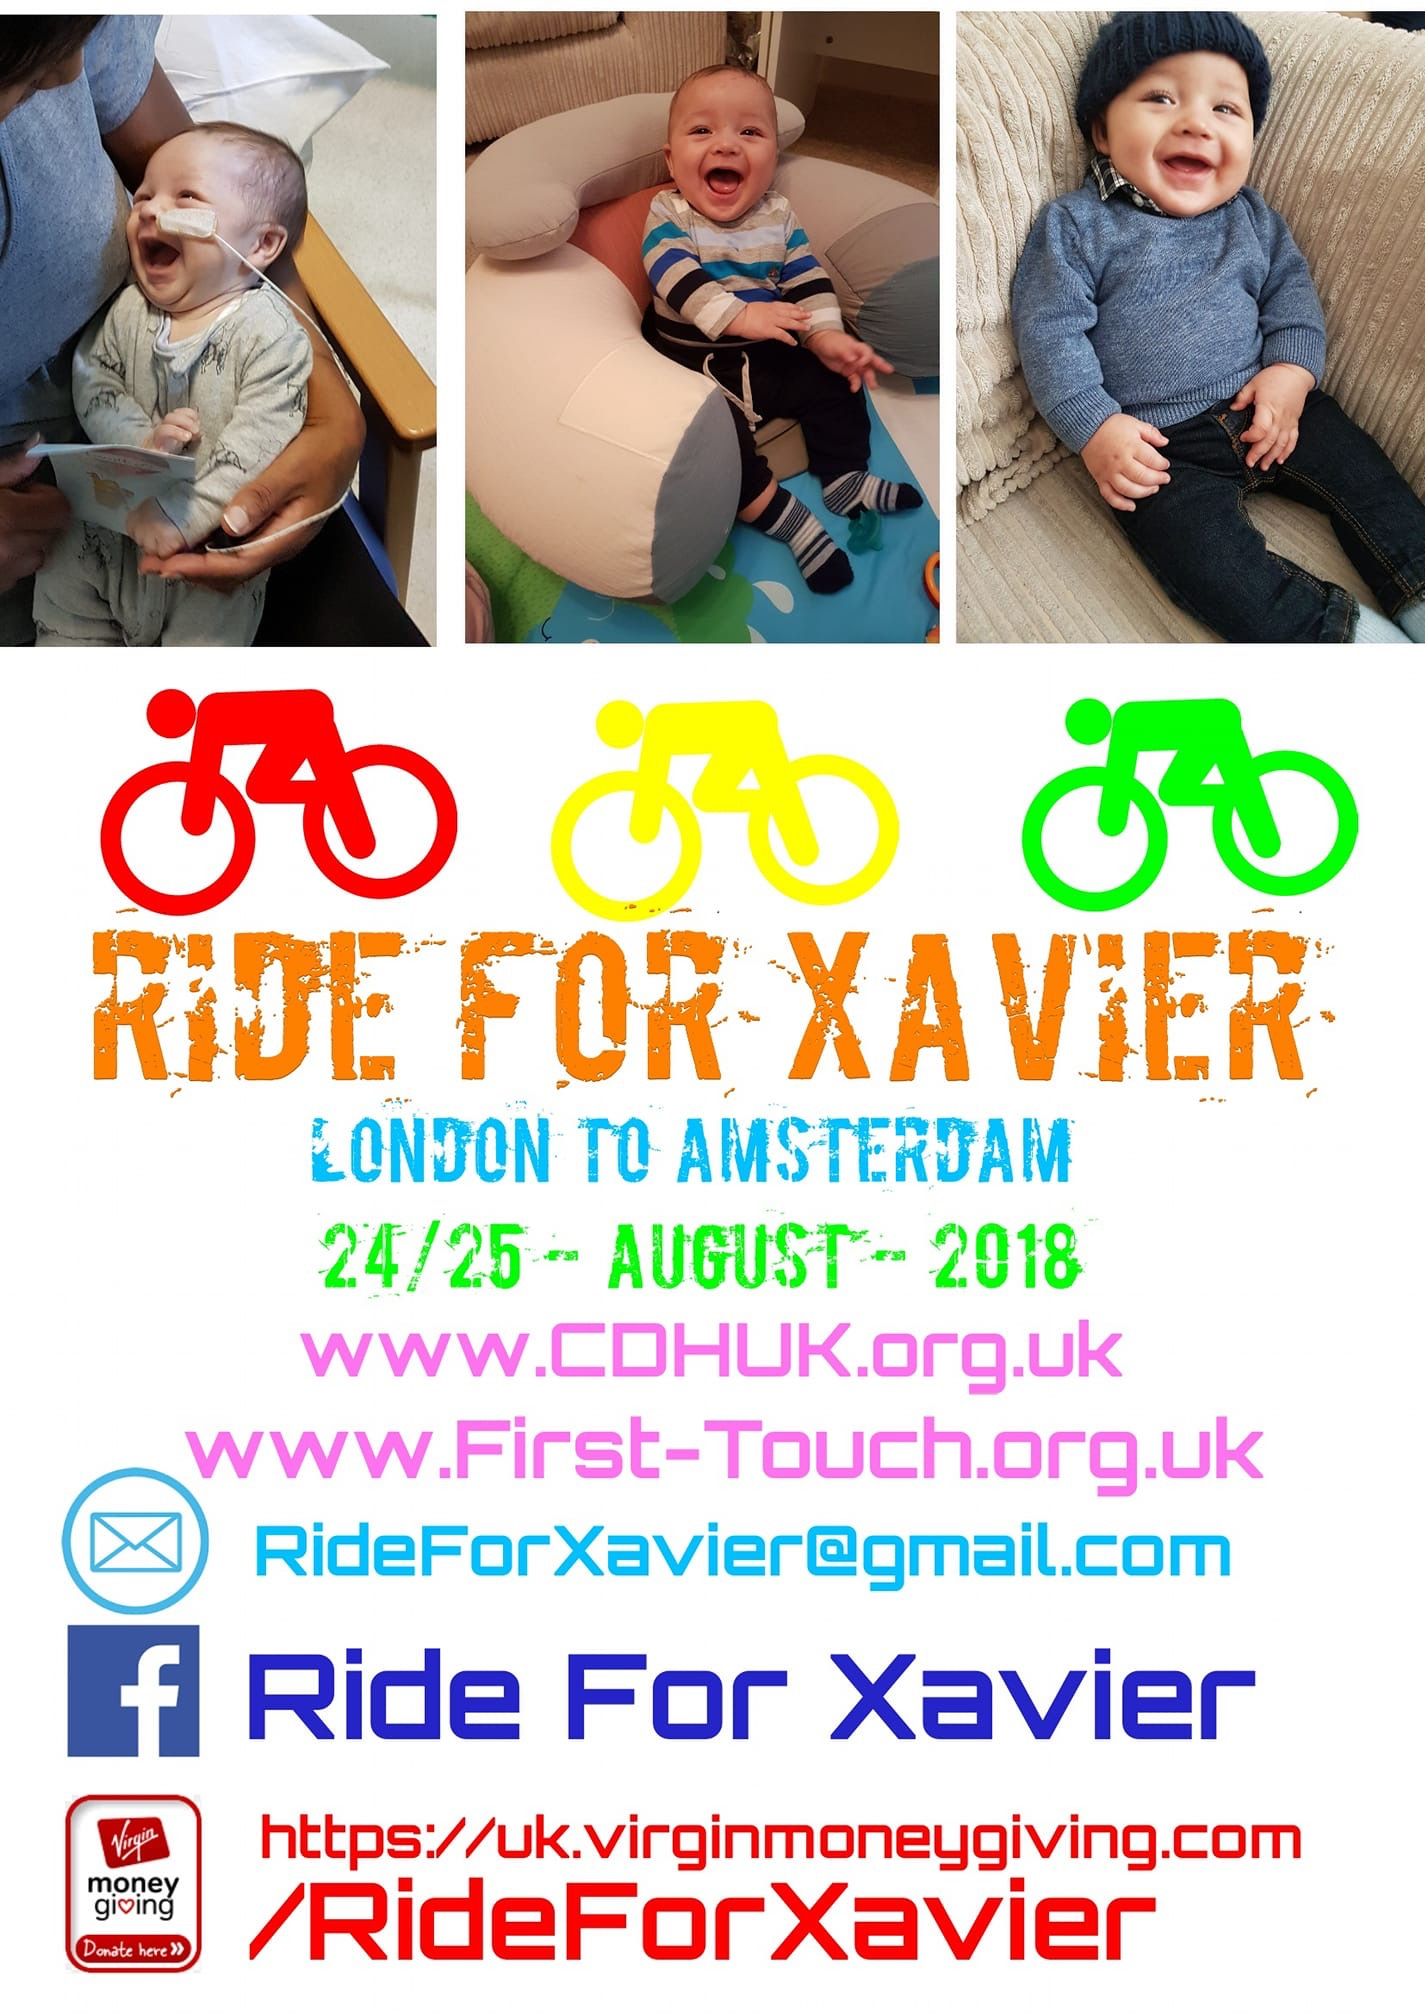 Ride for Xavier